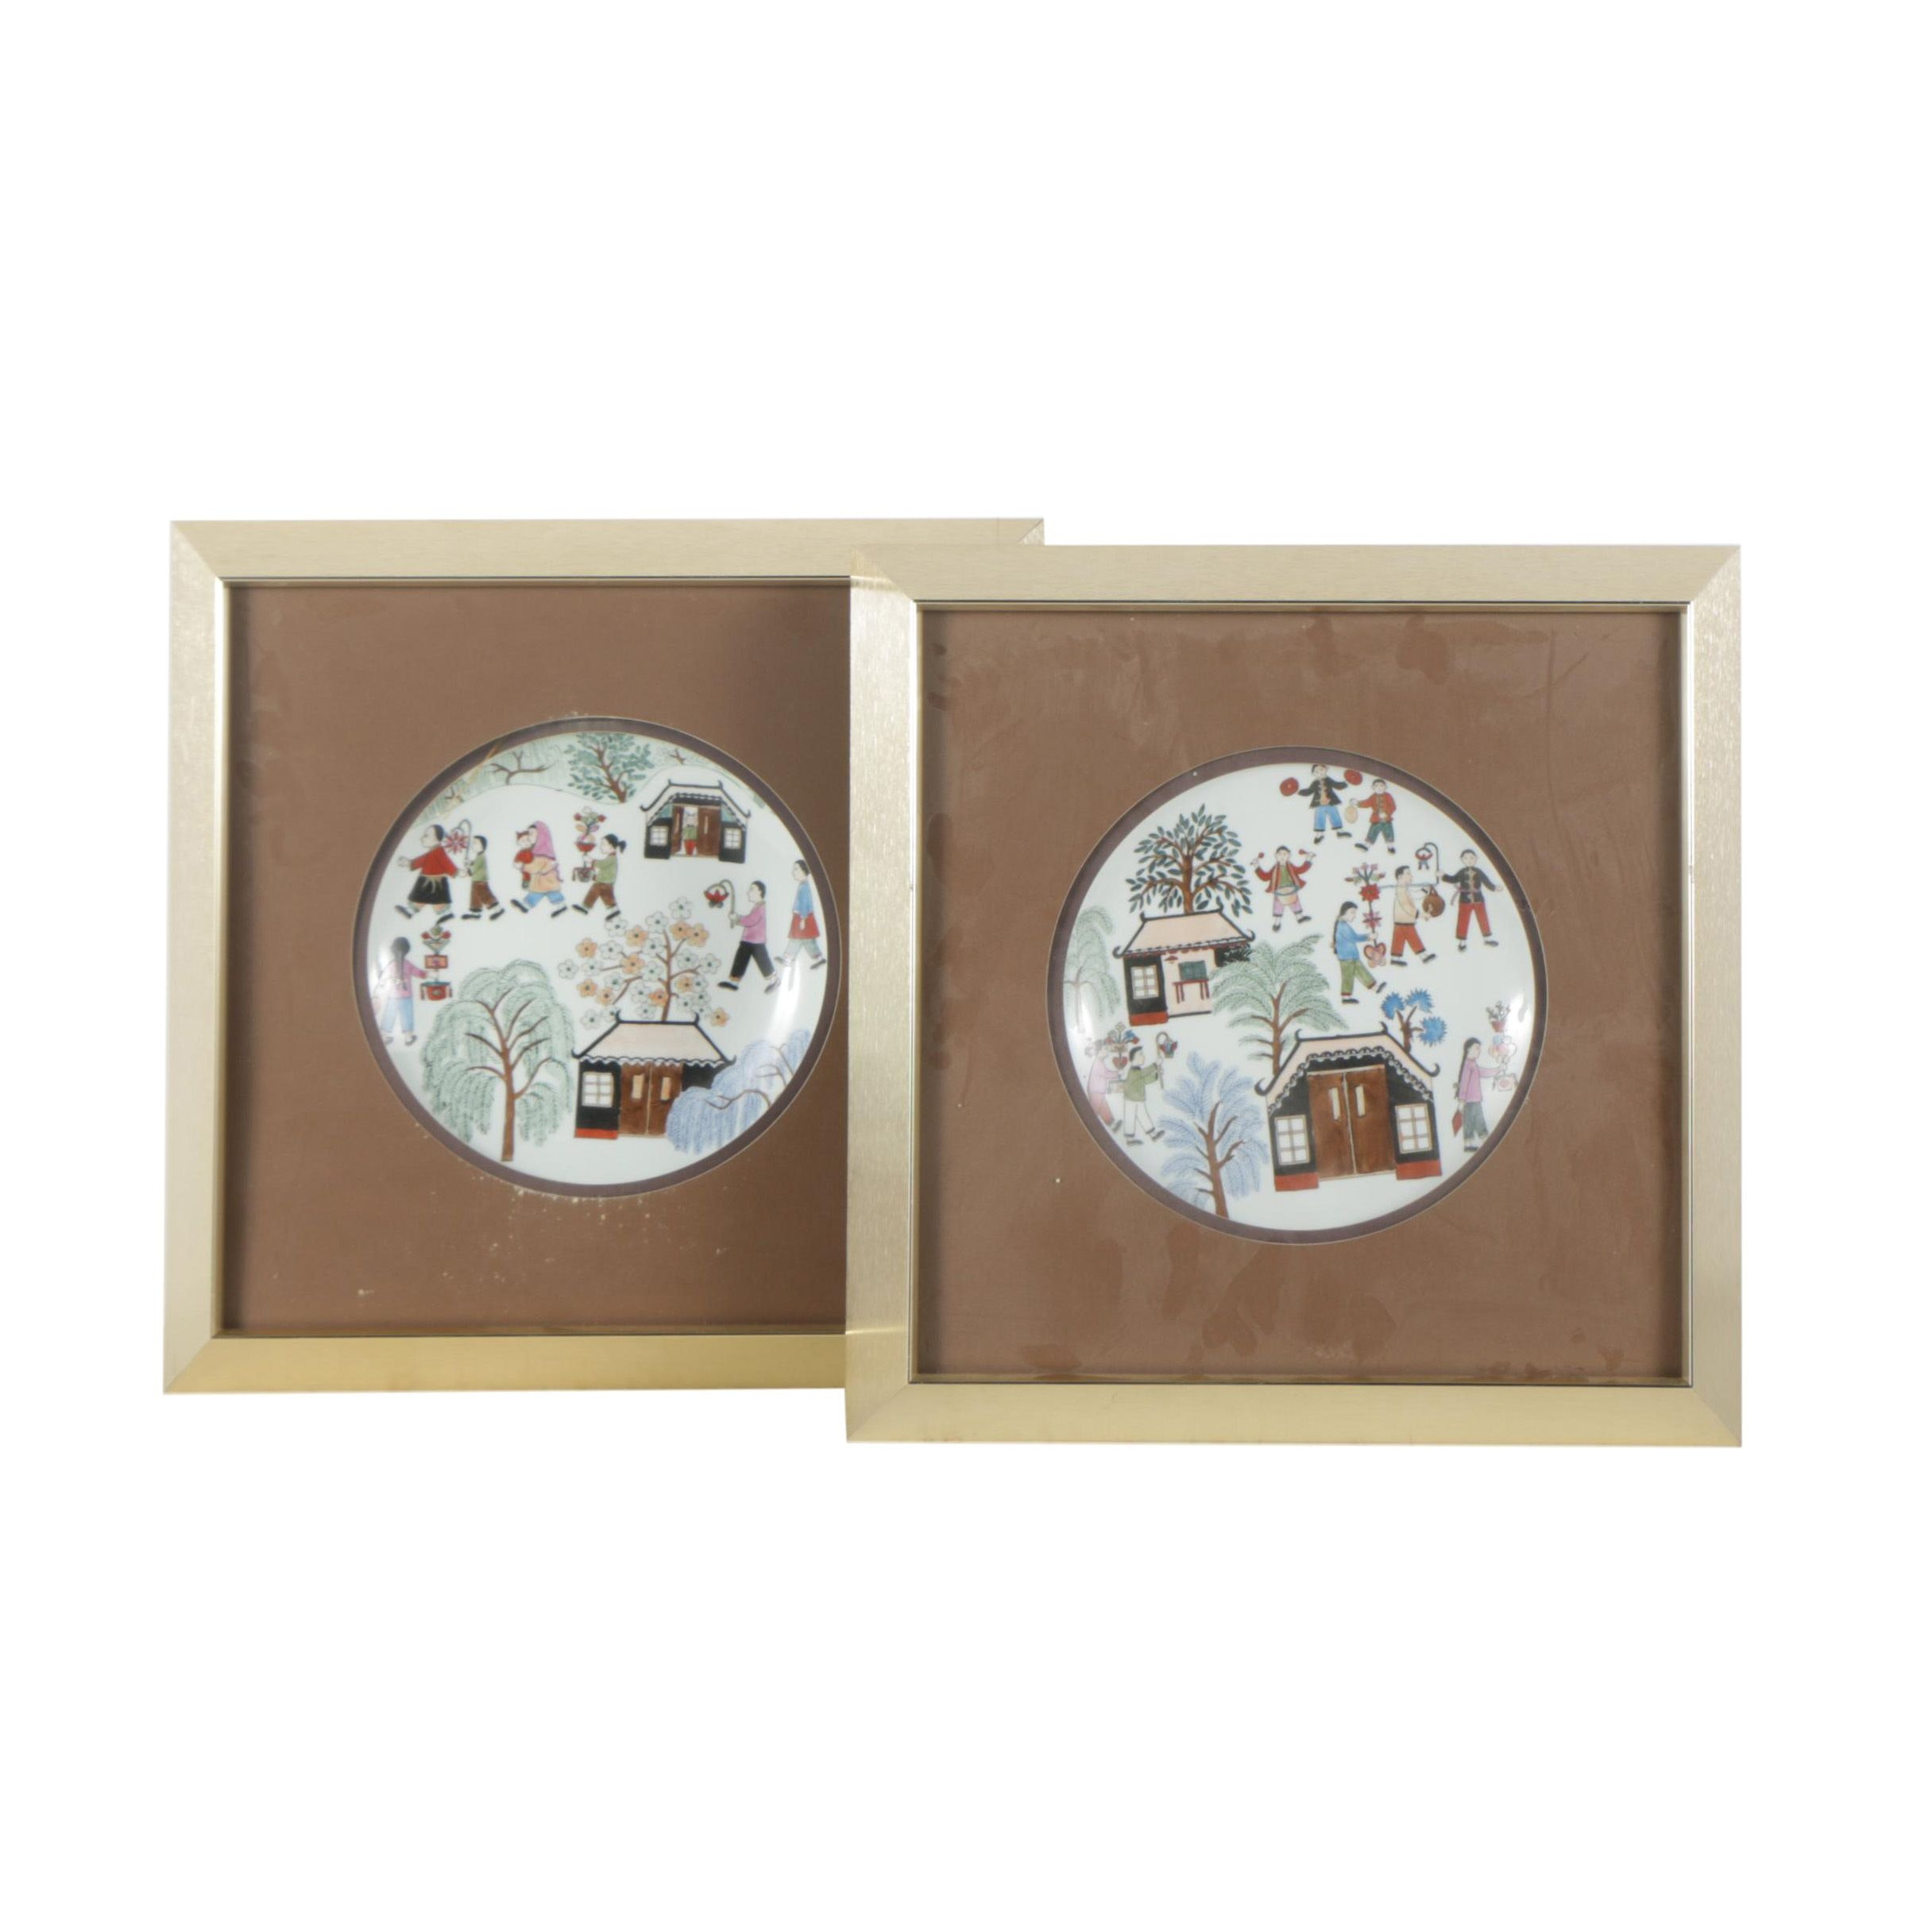 Framed Chinese Plates with Folk Art Village Scene